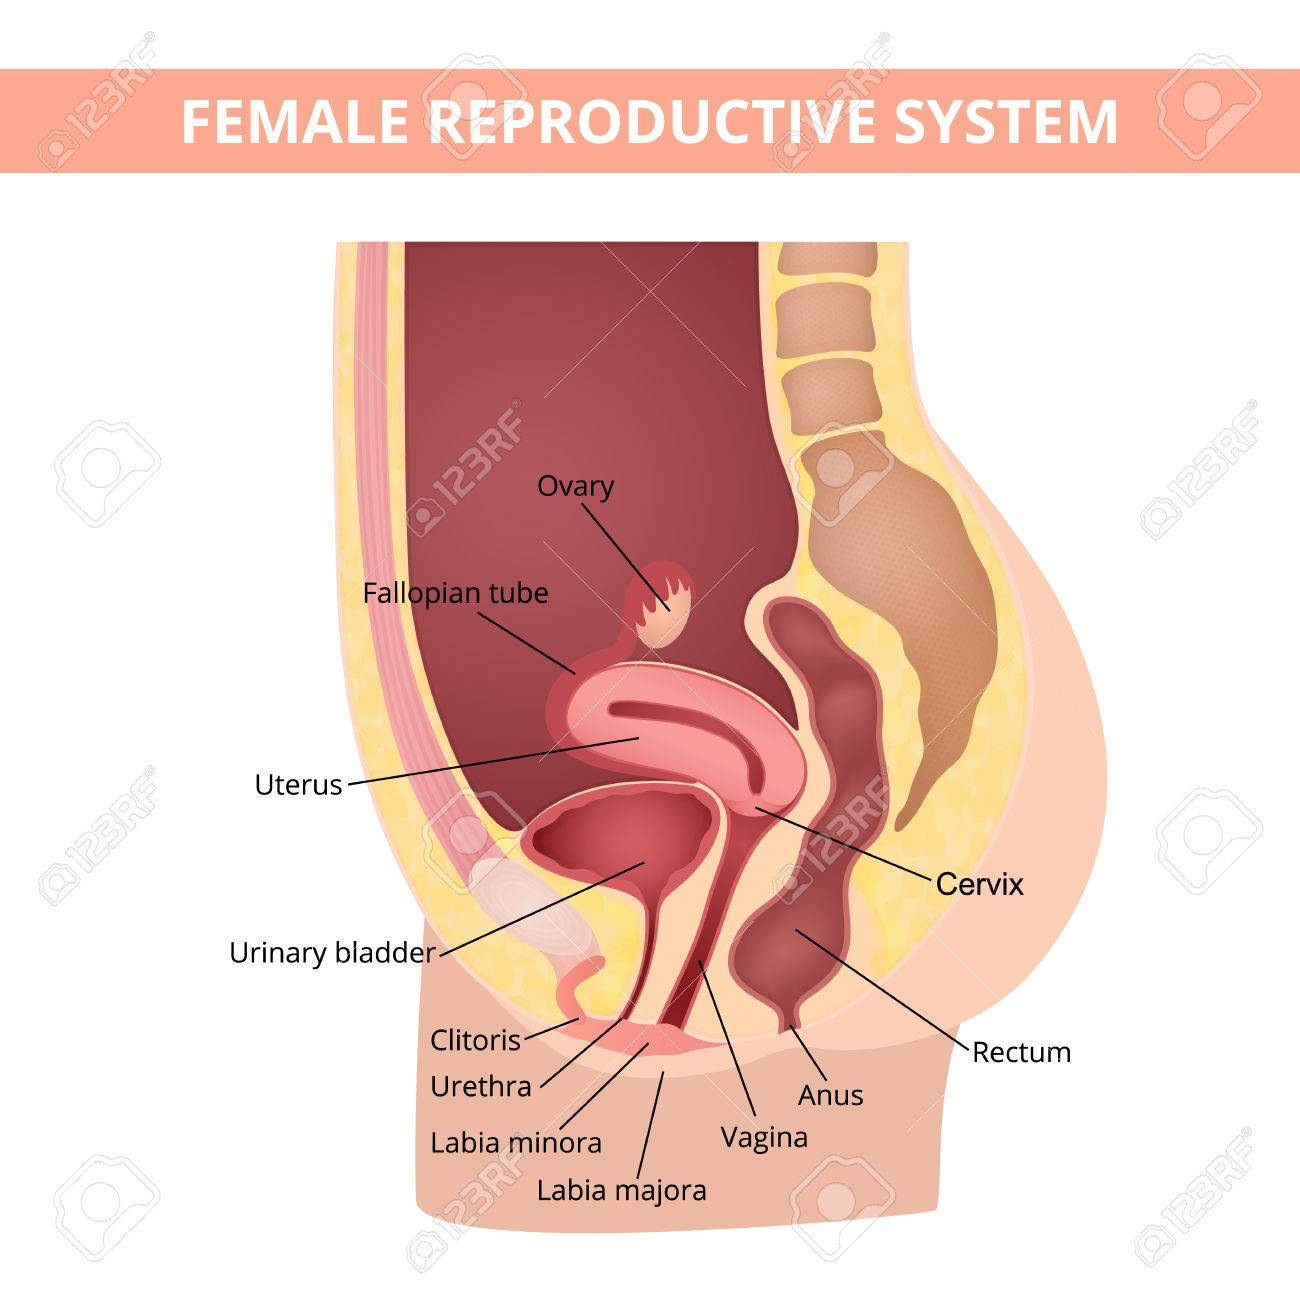 reproductive system - 69629653